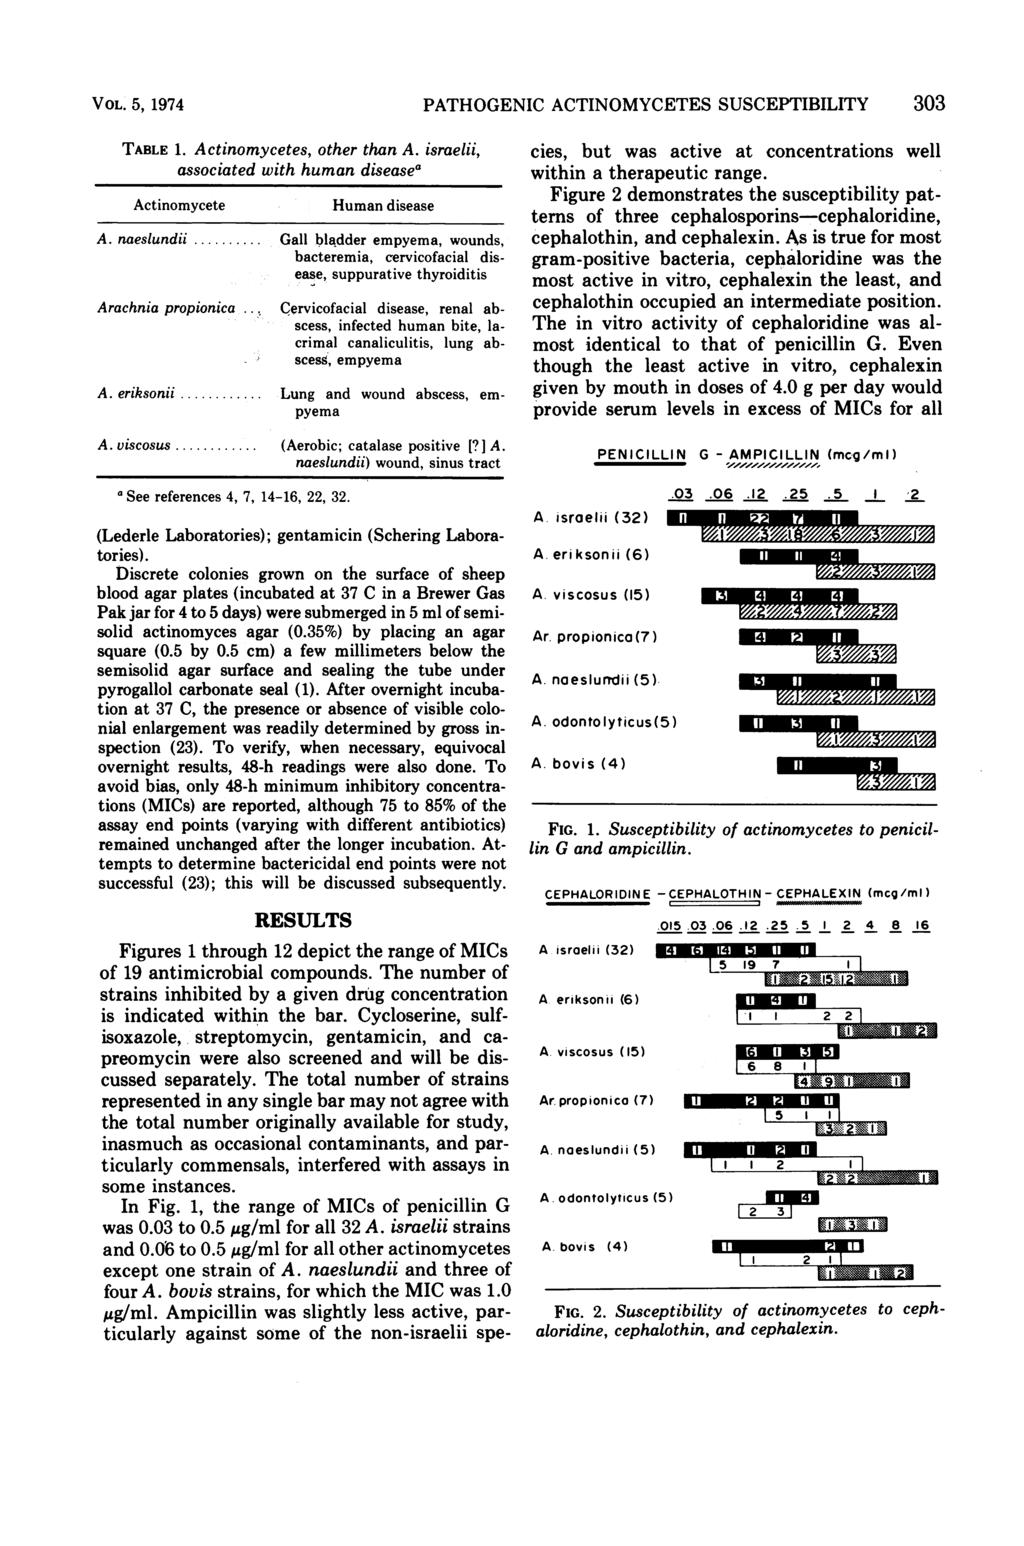 "VOL. 5, 1974 PATHOGENIC ACTINOMYCETES SUSCEPTIBILITY 303 TABLE 1. Actinomycetes, other than A. israelii, associated with human disease"" Actinomycete Human disease A. naeslundii."